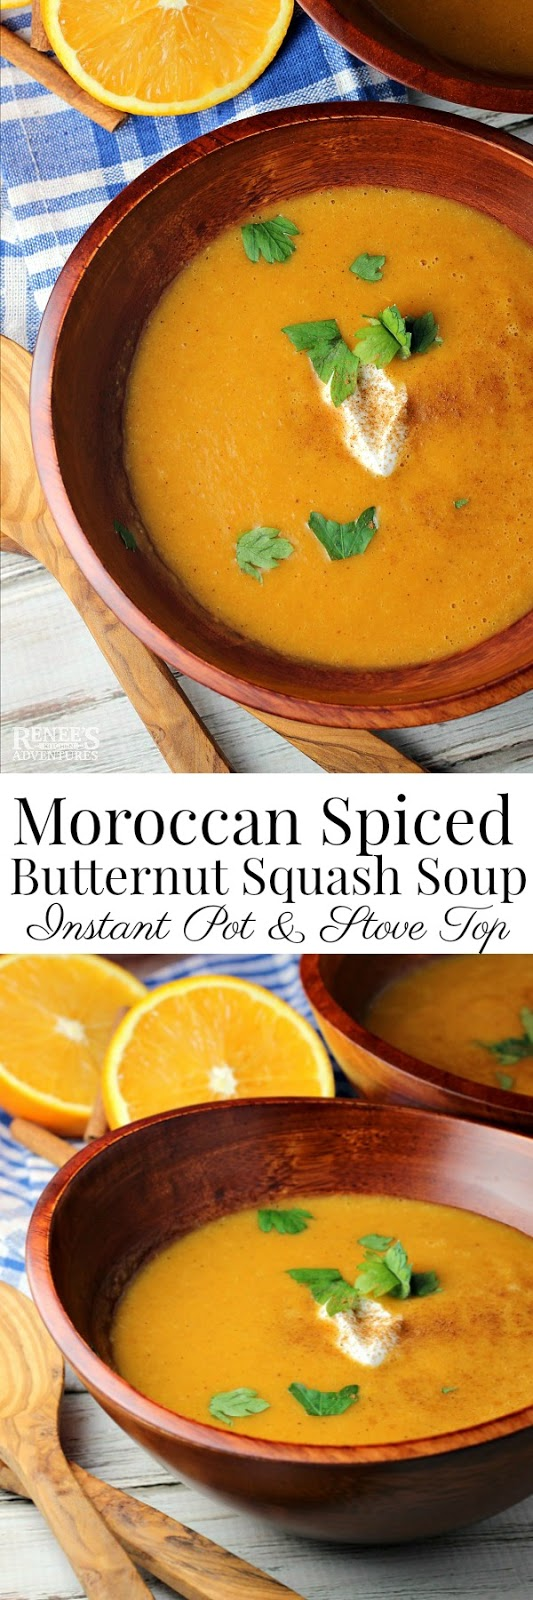 Instant Pot Moroccan Spiced Butternut Squash Soup - Renee's Kitchen Adventures - easy #weightwatchers #soup #recipe made in your #Instantpot So flavorful, you won't believe you're eating #healthy!